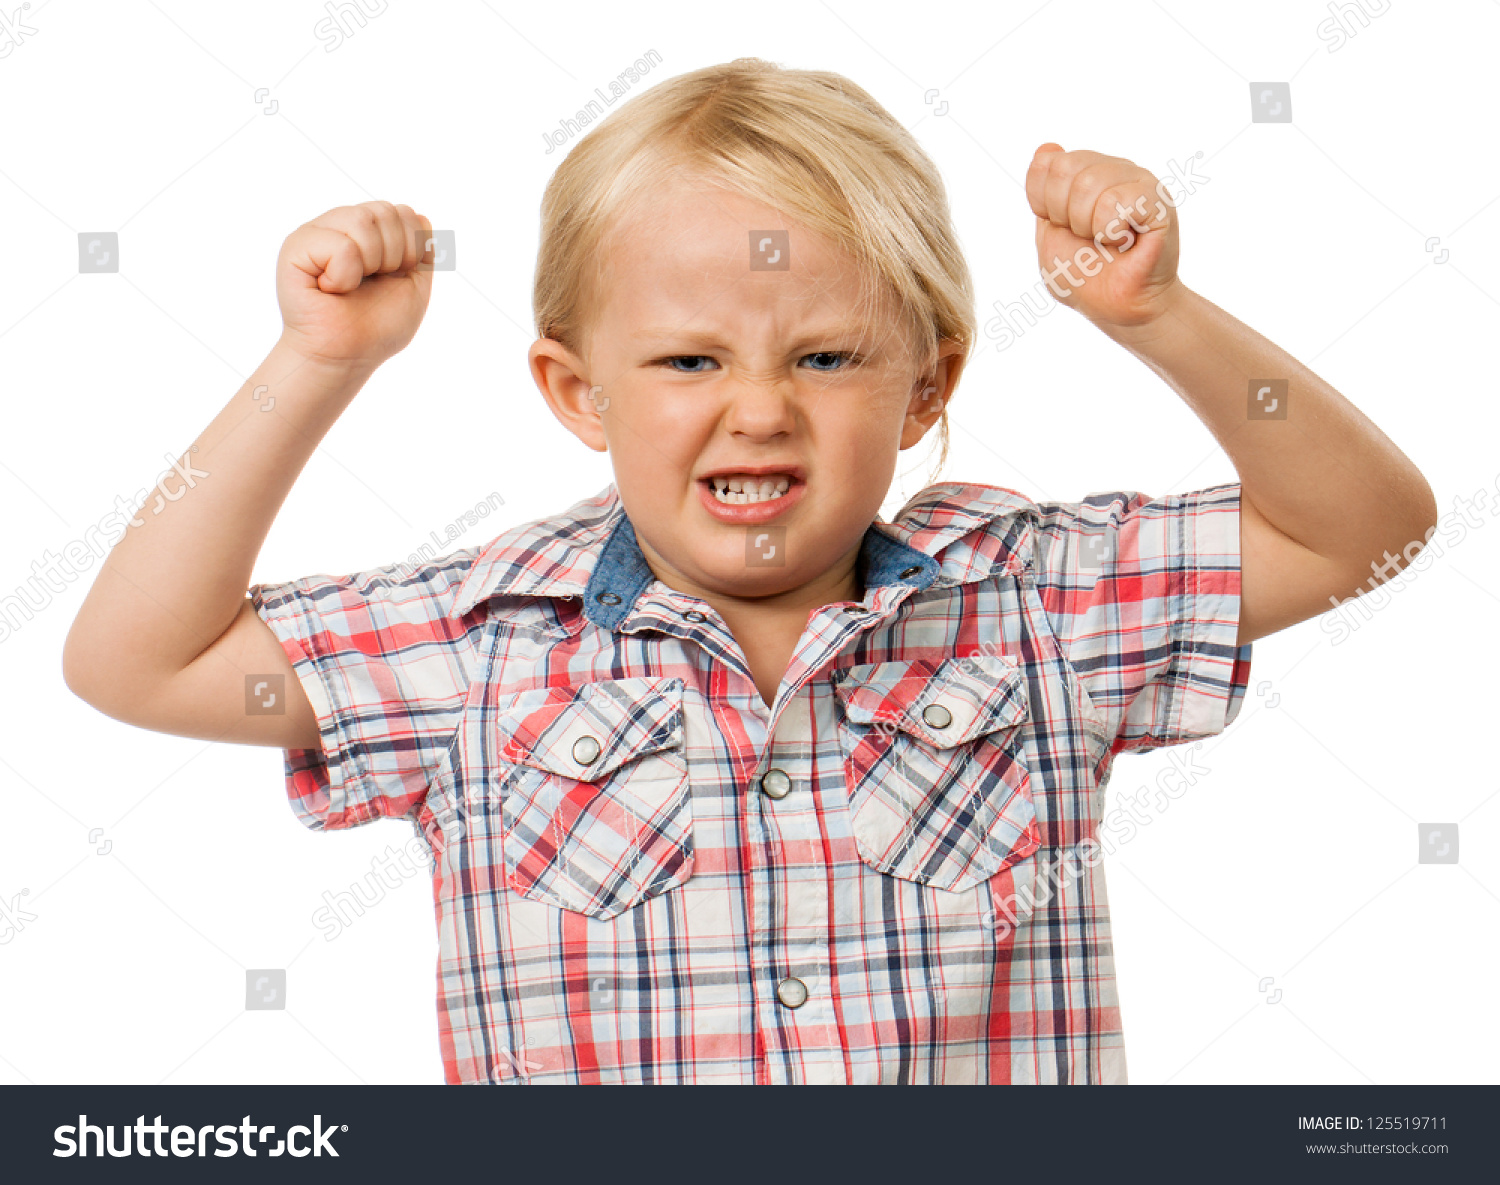 Grimace face clip art stock photo woman pulls a face in upset - A Frustrated And Angry Young Boy With Fists Raised In The Air And Pulling A Face